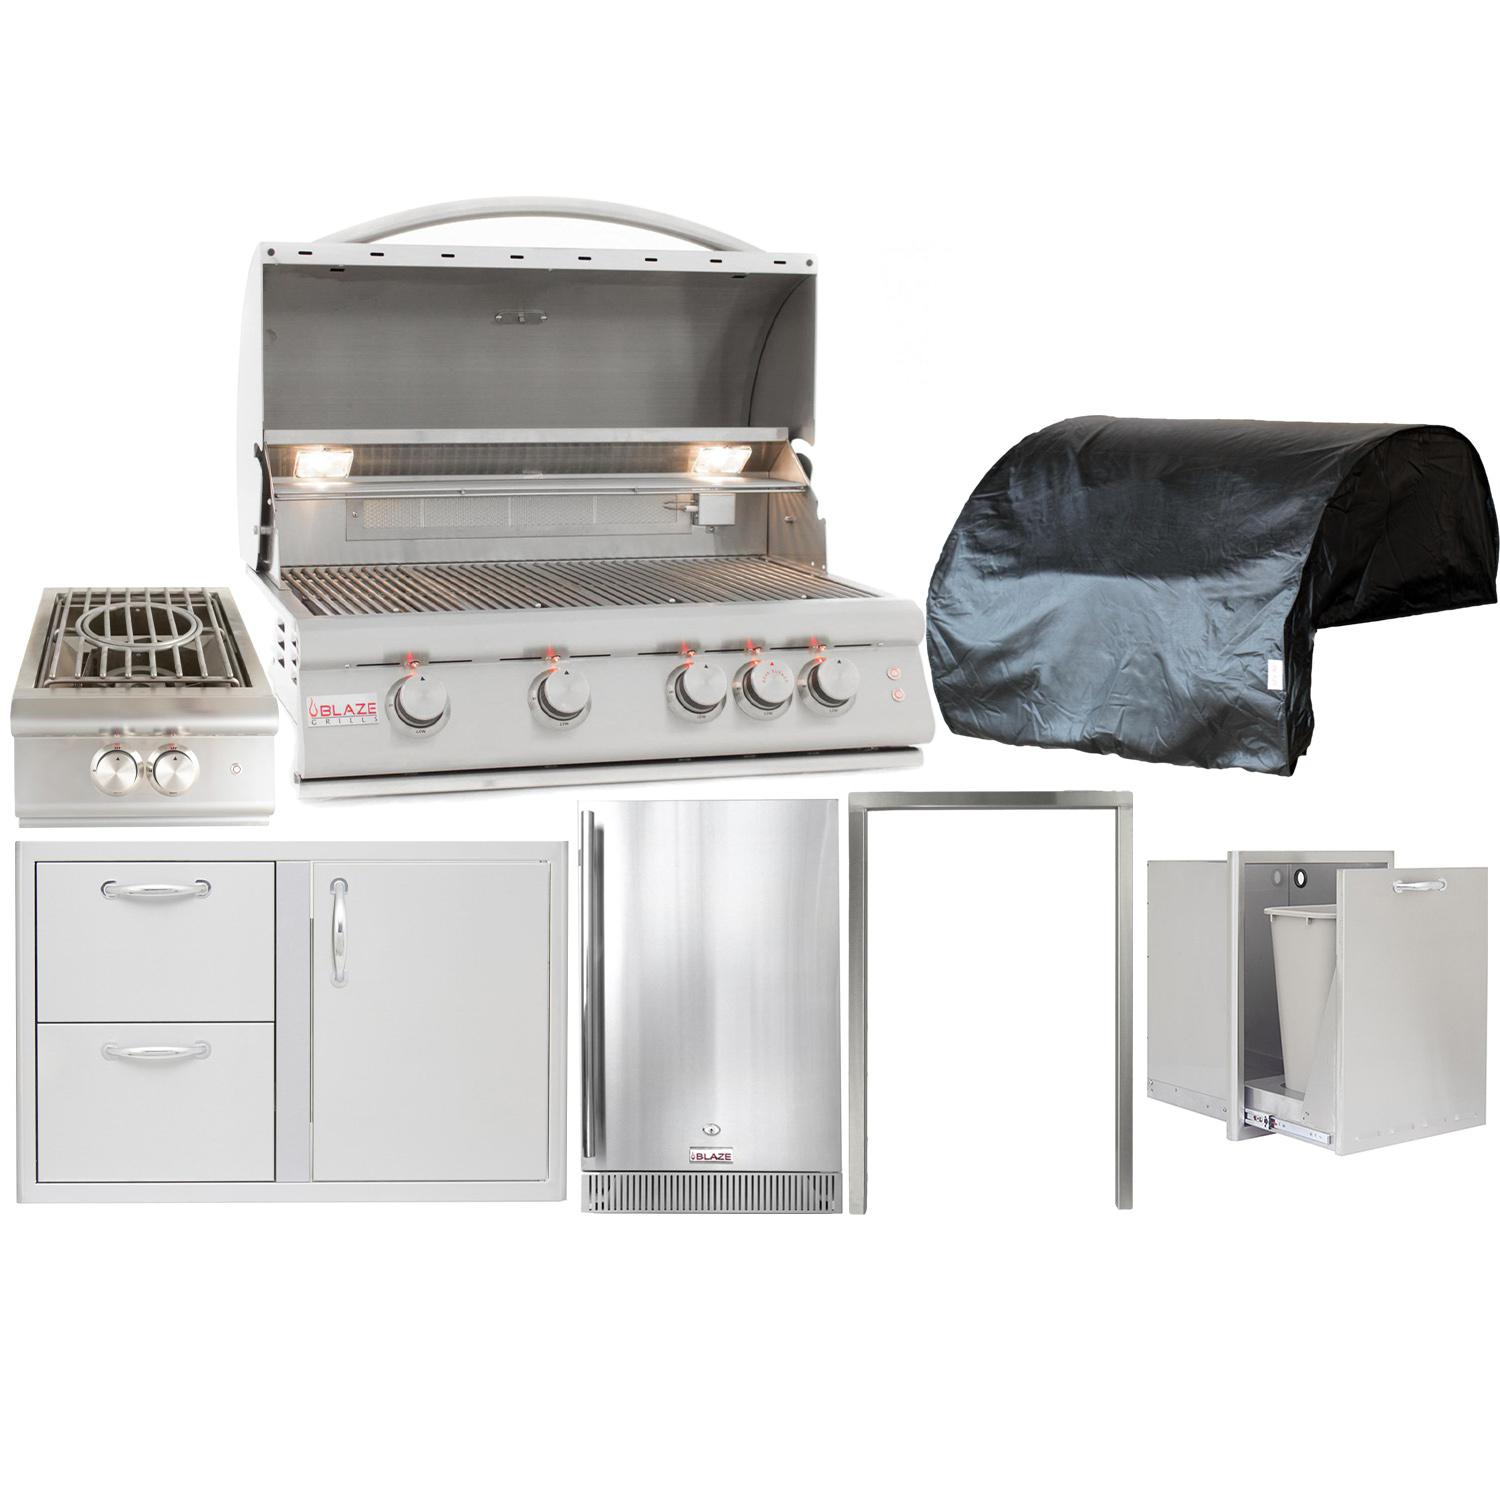 "Blaze Outdoor Products Lte 7-piece 32"" Propane Gas Outdoor Kitchen Package"